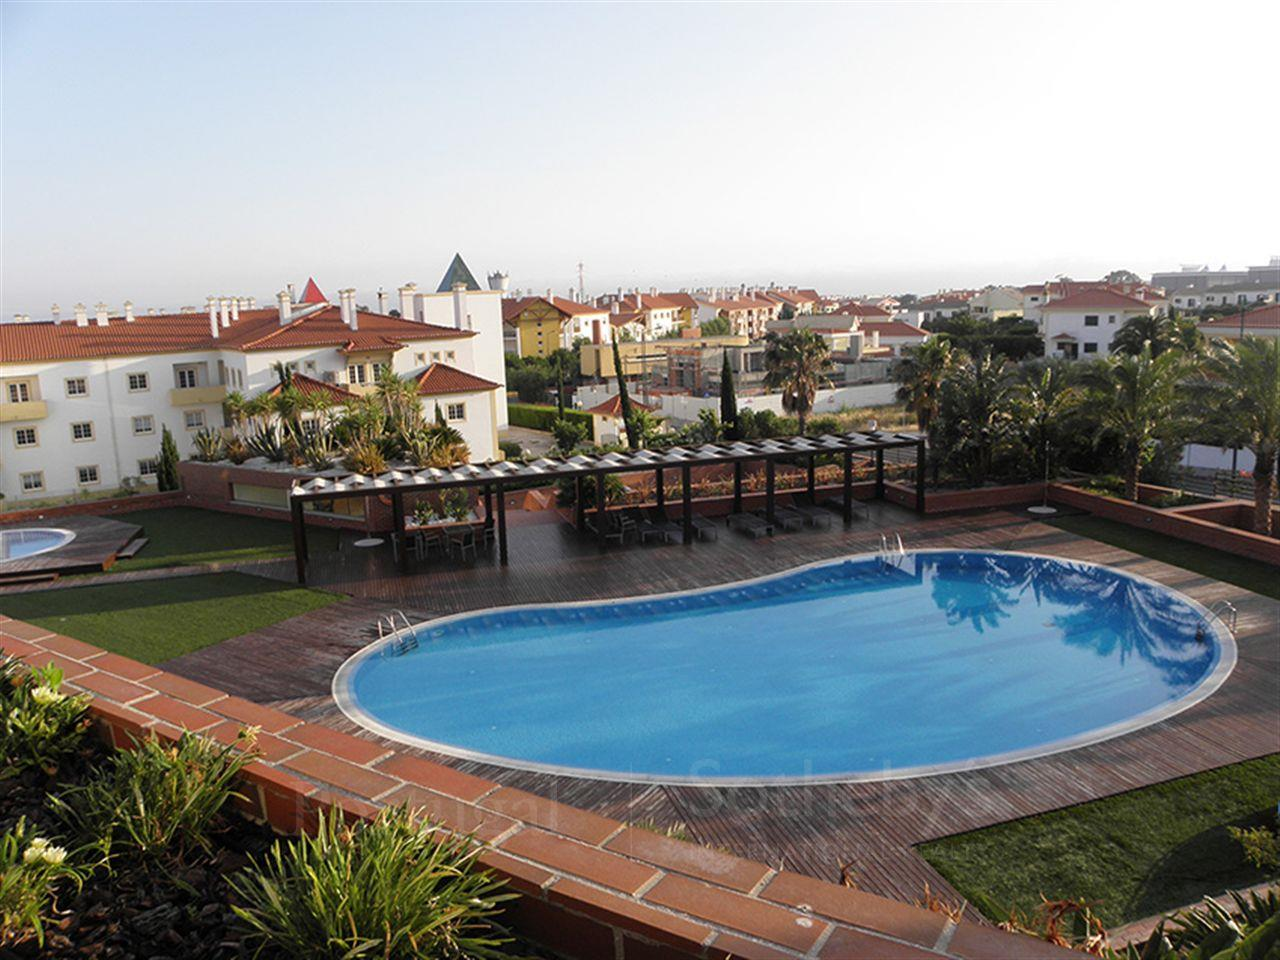 Apartment for Sale at Flat, 5 bedrooms, for Sale Sintra, Lisboa 2710-698 Portugal